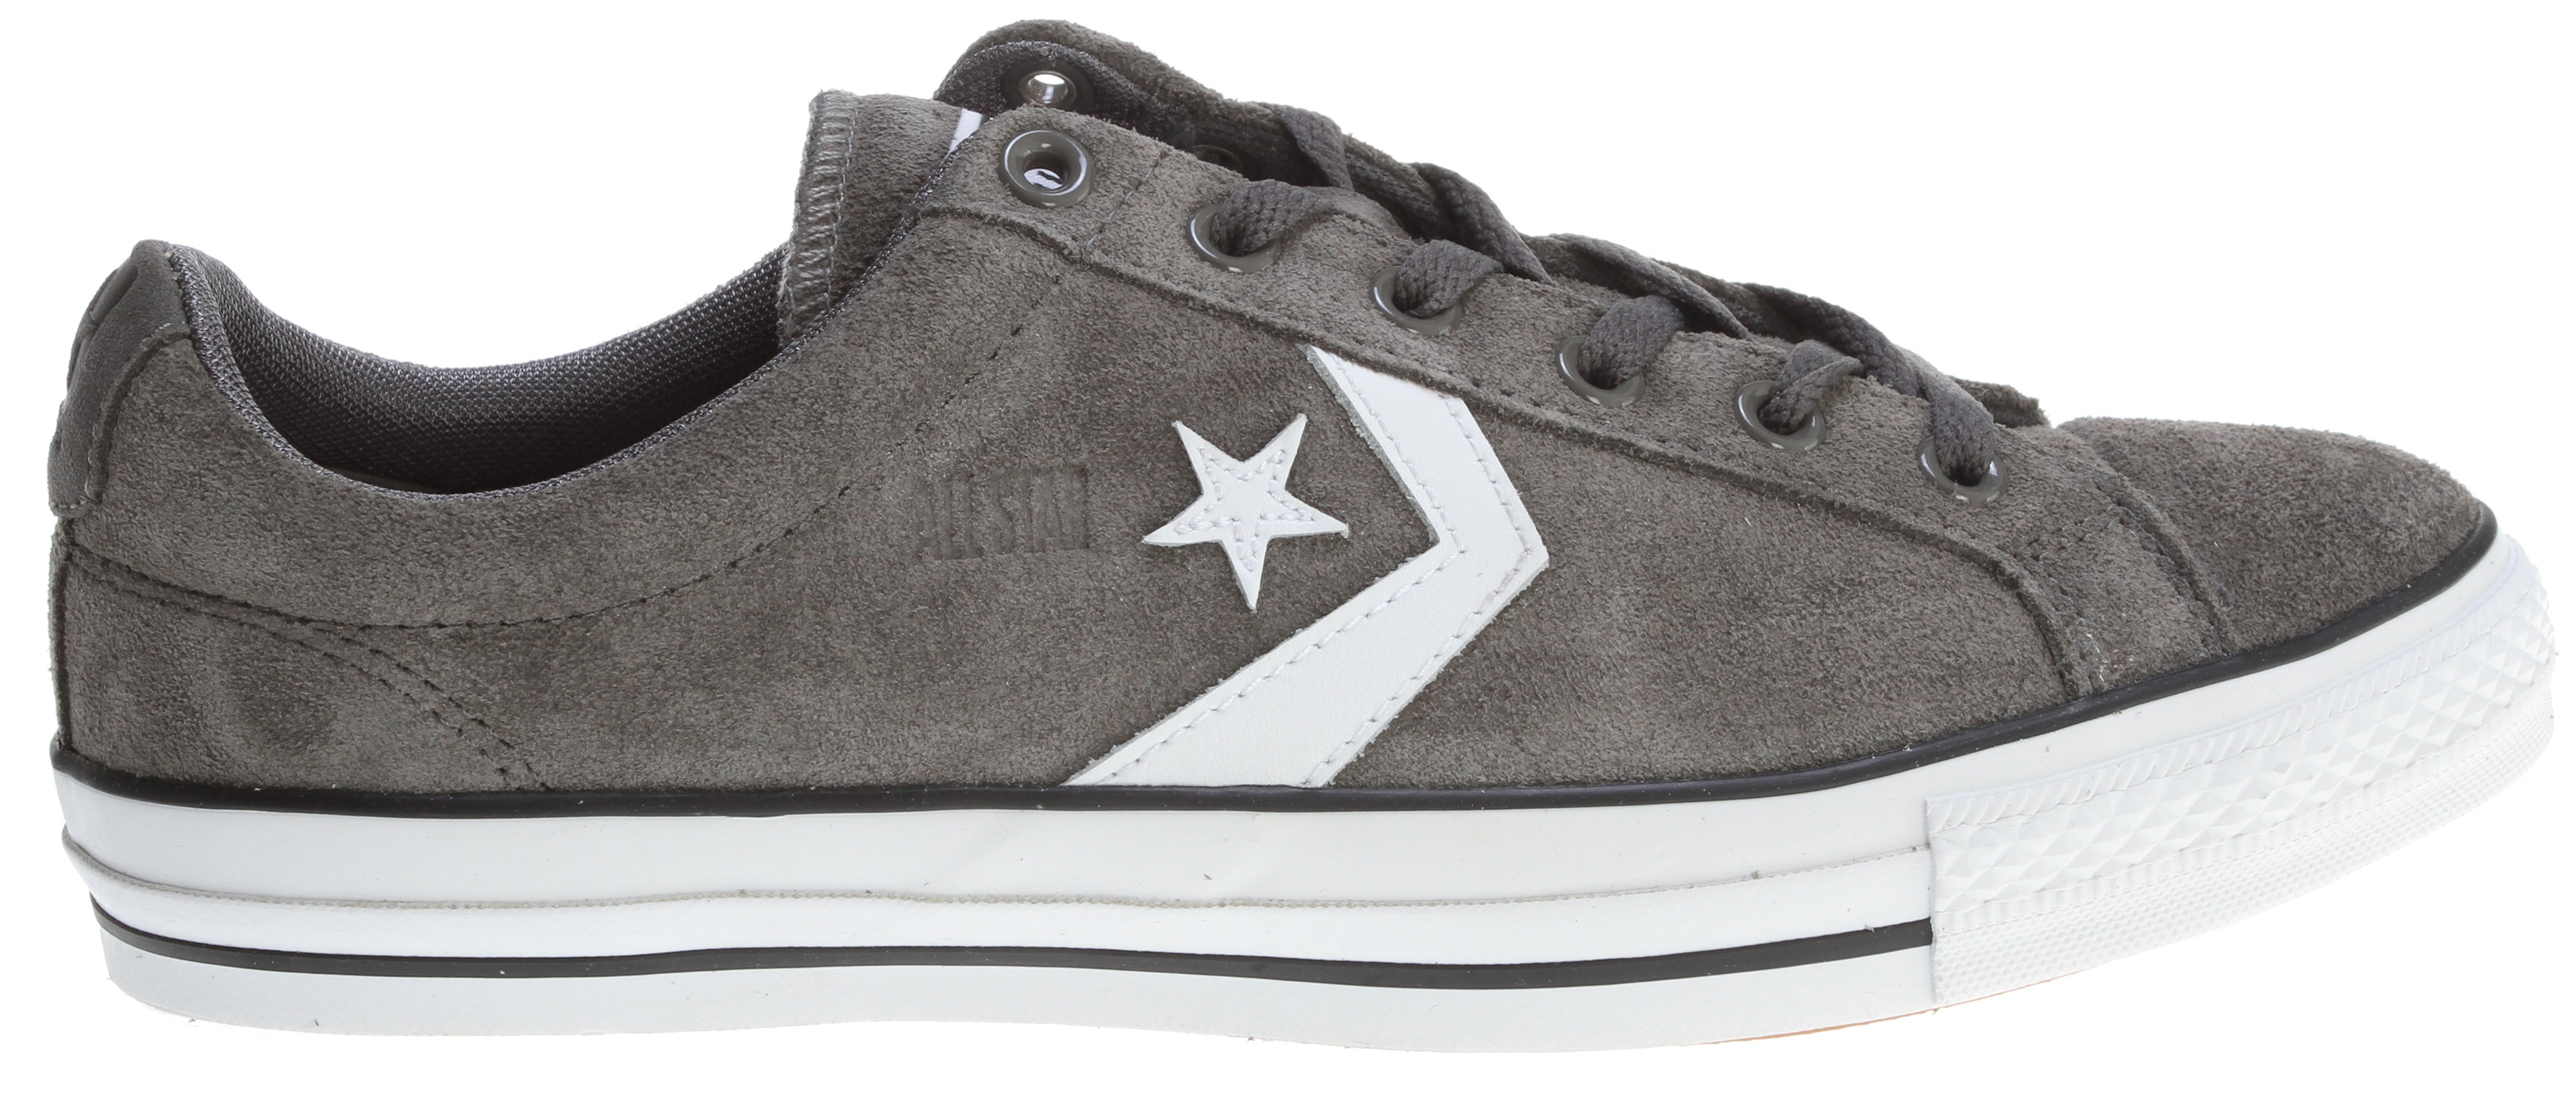 Skateboard Key Features of the Converse Star Player LS Skate Shoes: Inspired by Kenny Anderson Suede upper with leather Converse logos on sides Converse All Star tag on tongue Converse logo on back of heel Lightly padded tongue and collar Padded insole Rubber outsole. - $45.95